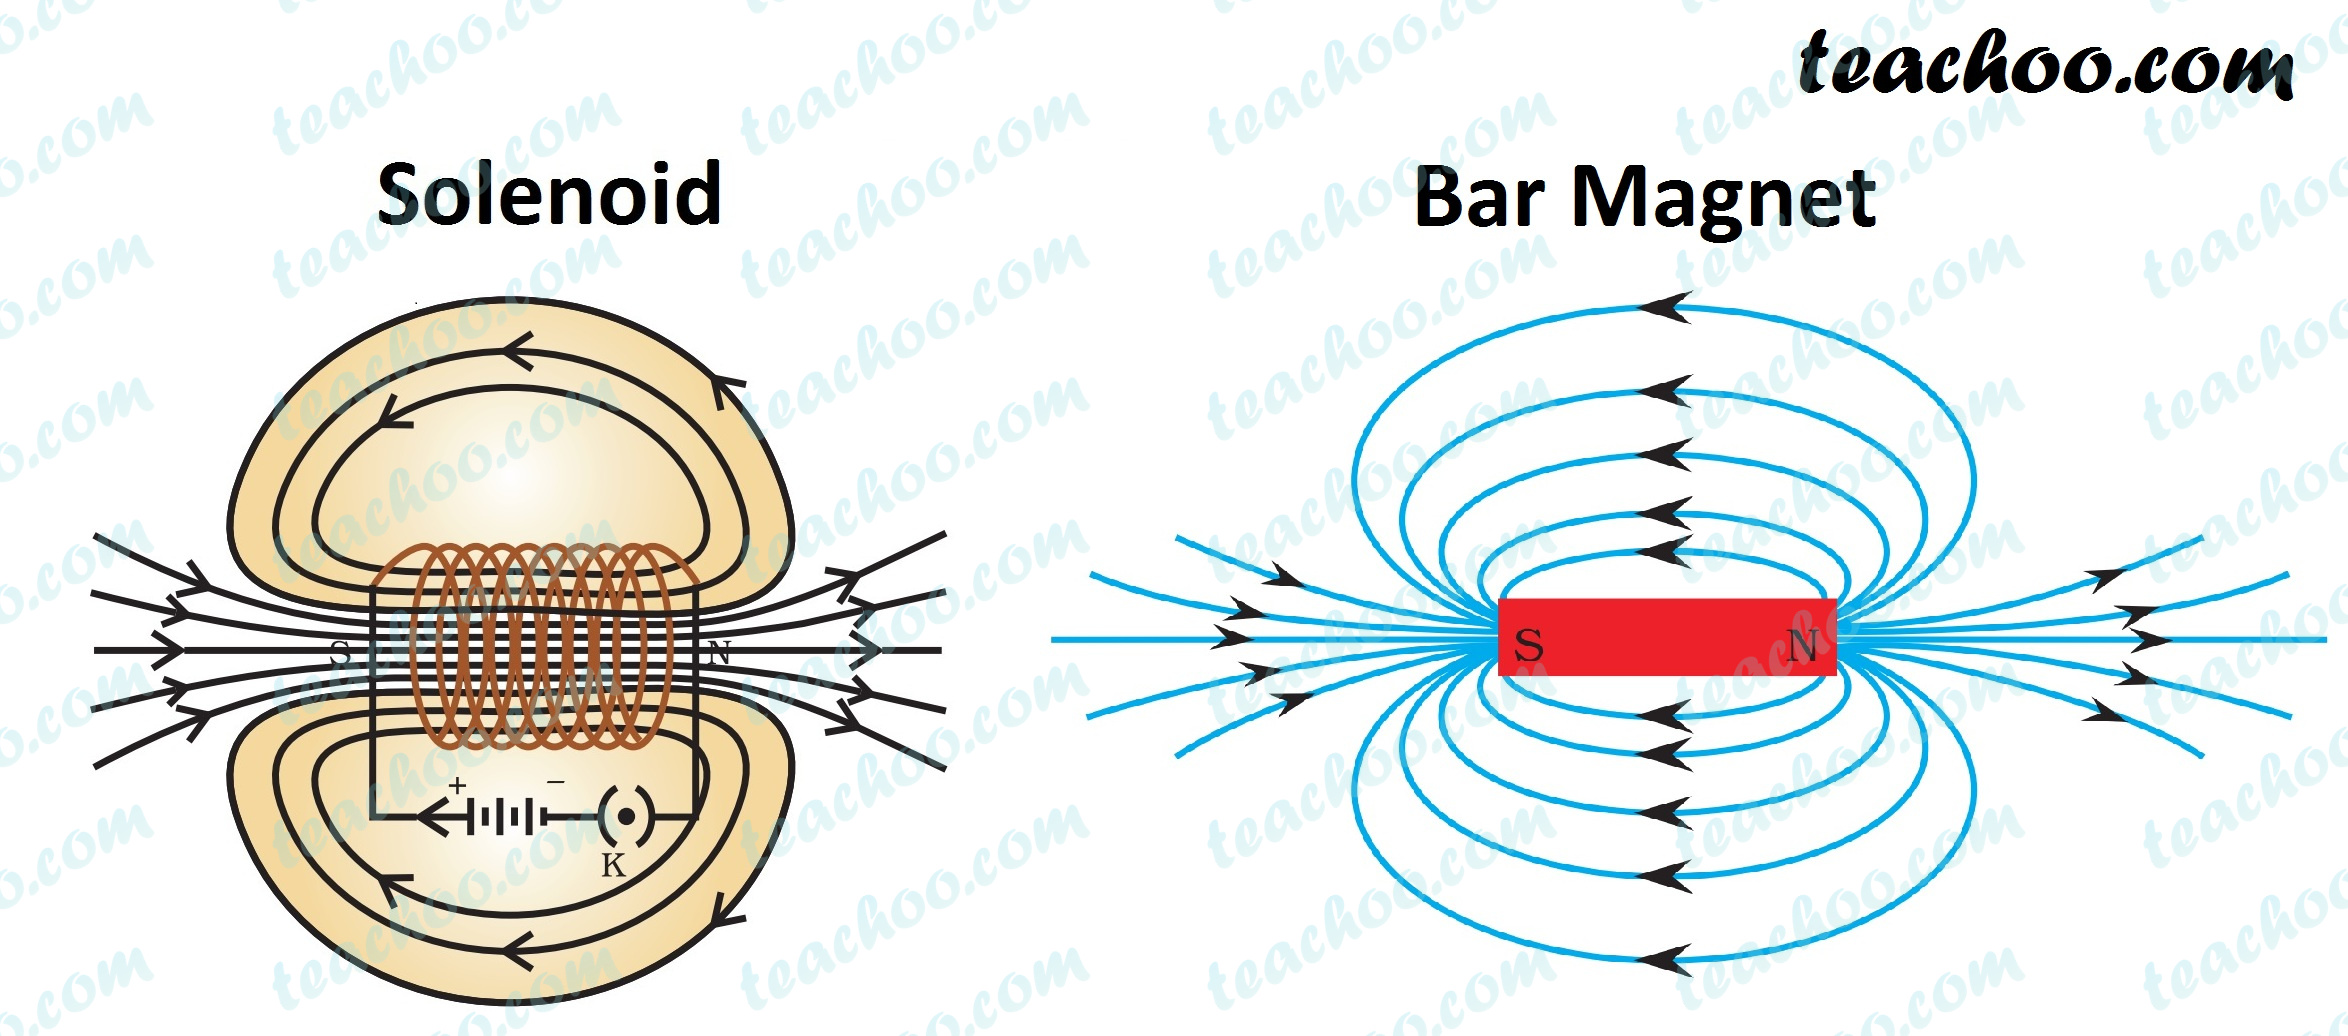 solenoid-and-bar-magnet-similarity---teachoo.jpg